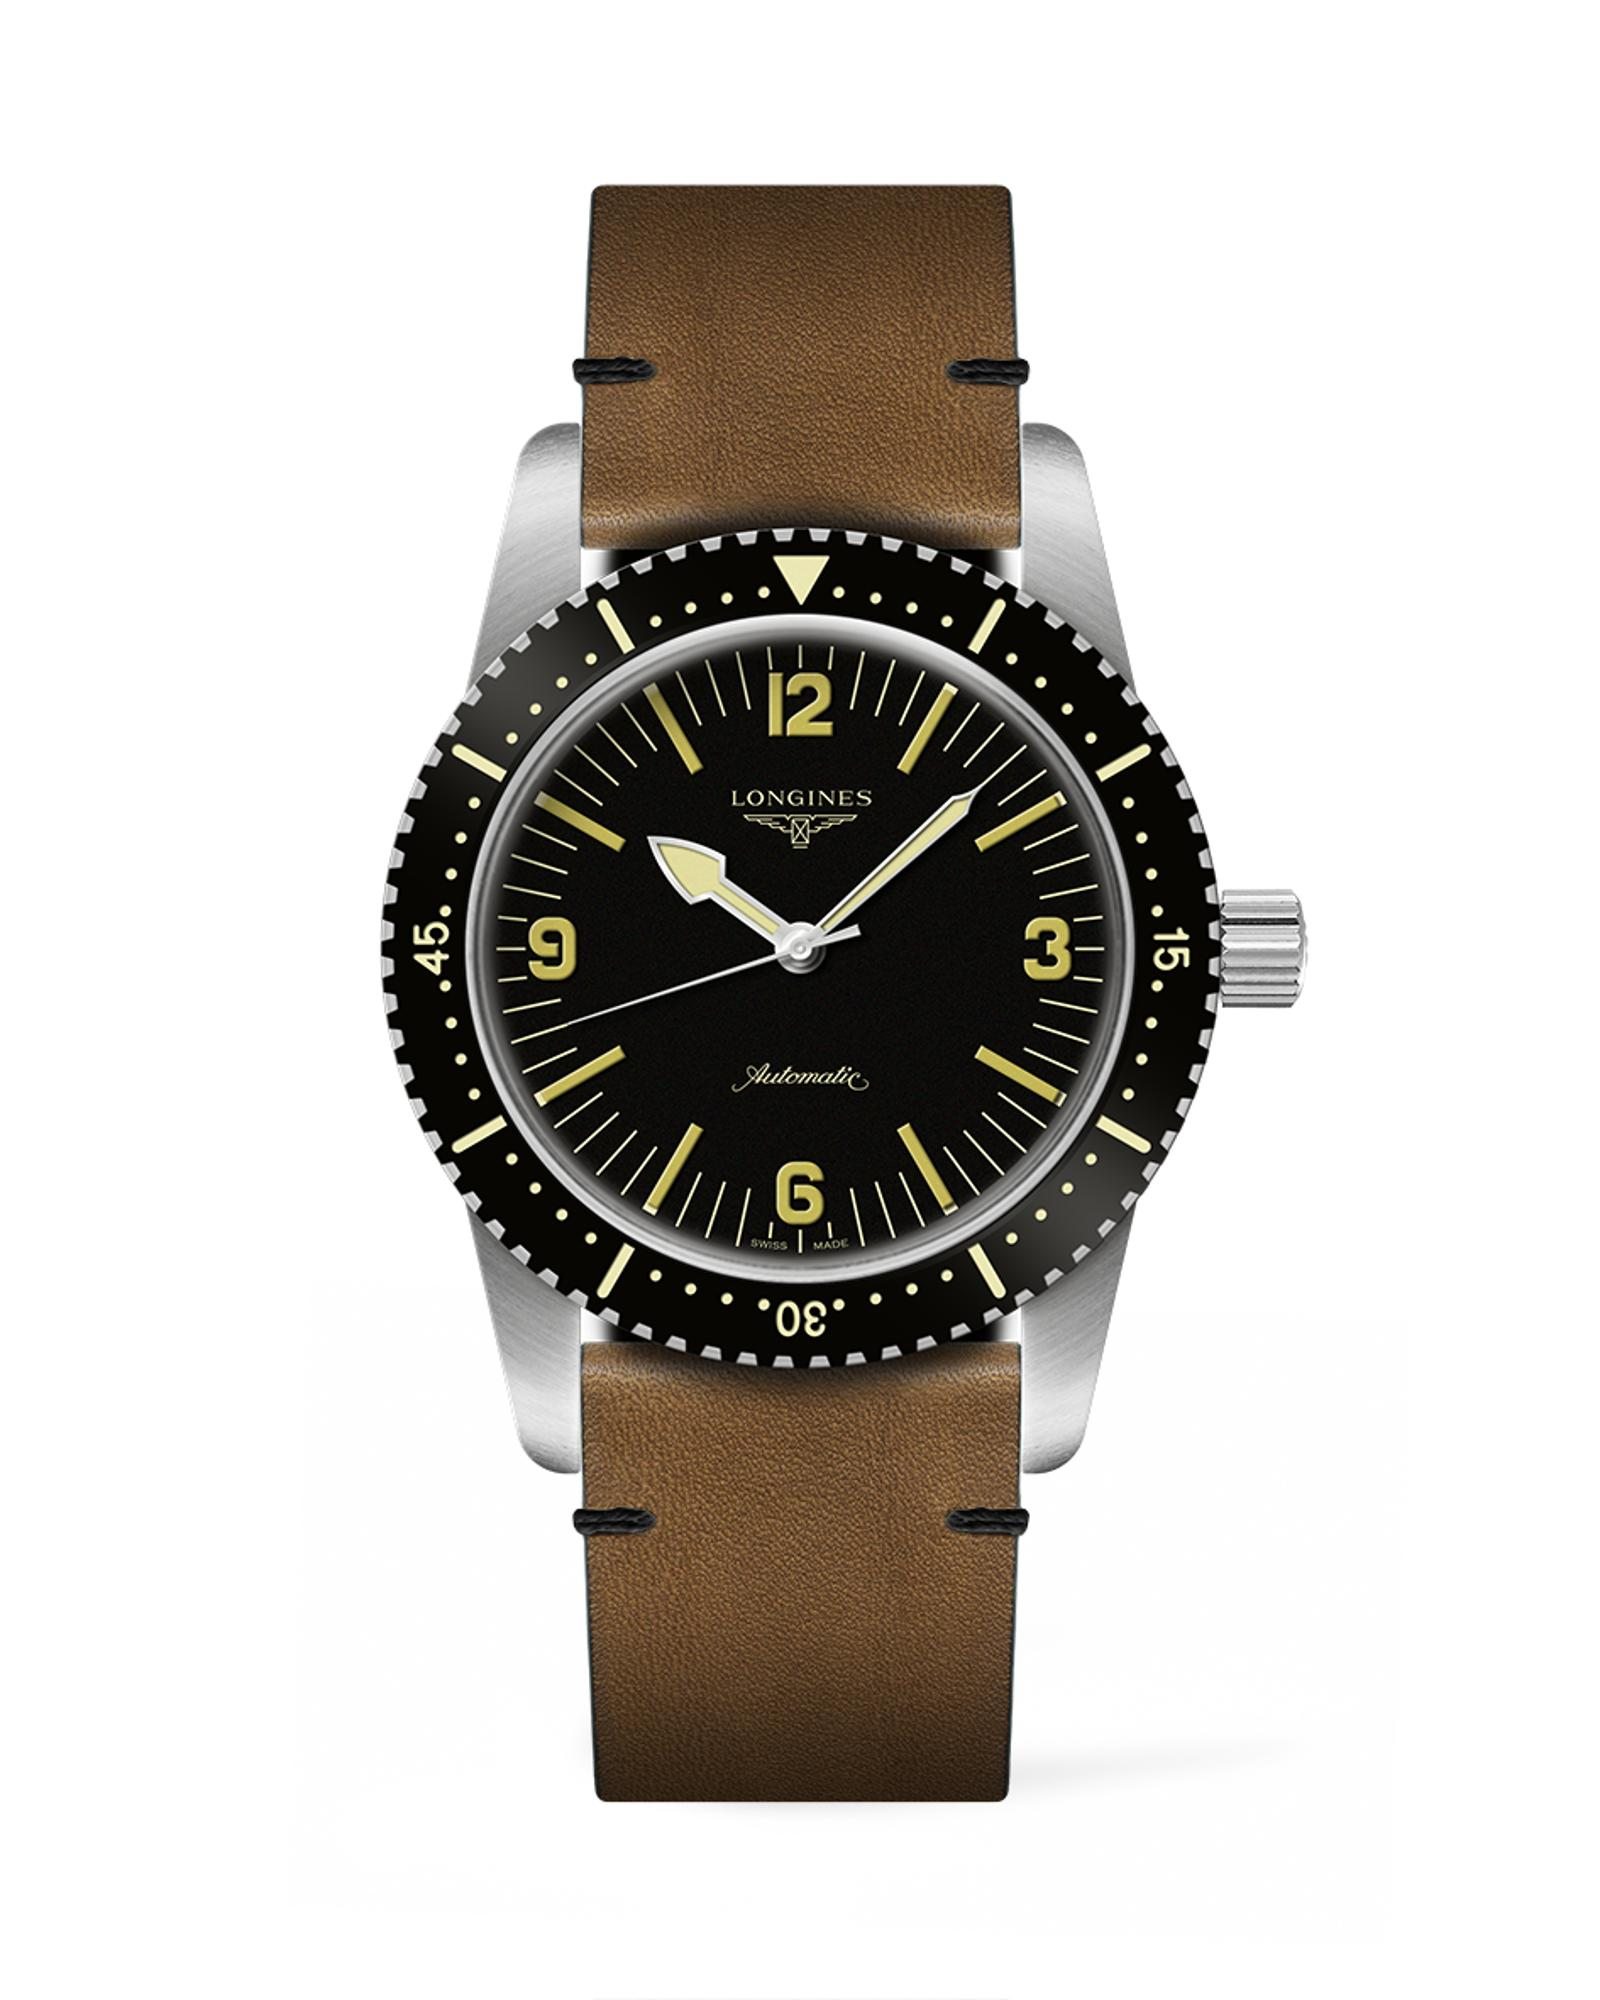 The Longines Skin Diver Watch L2.822.4.56.2